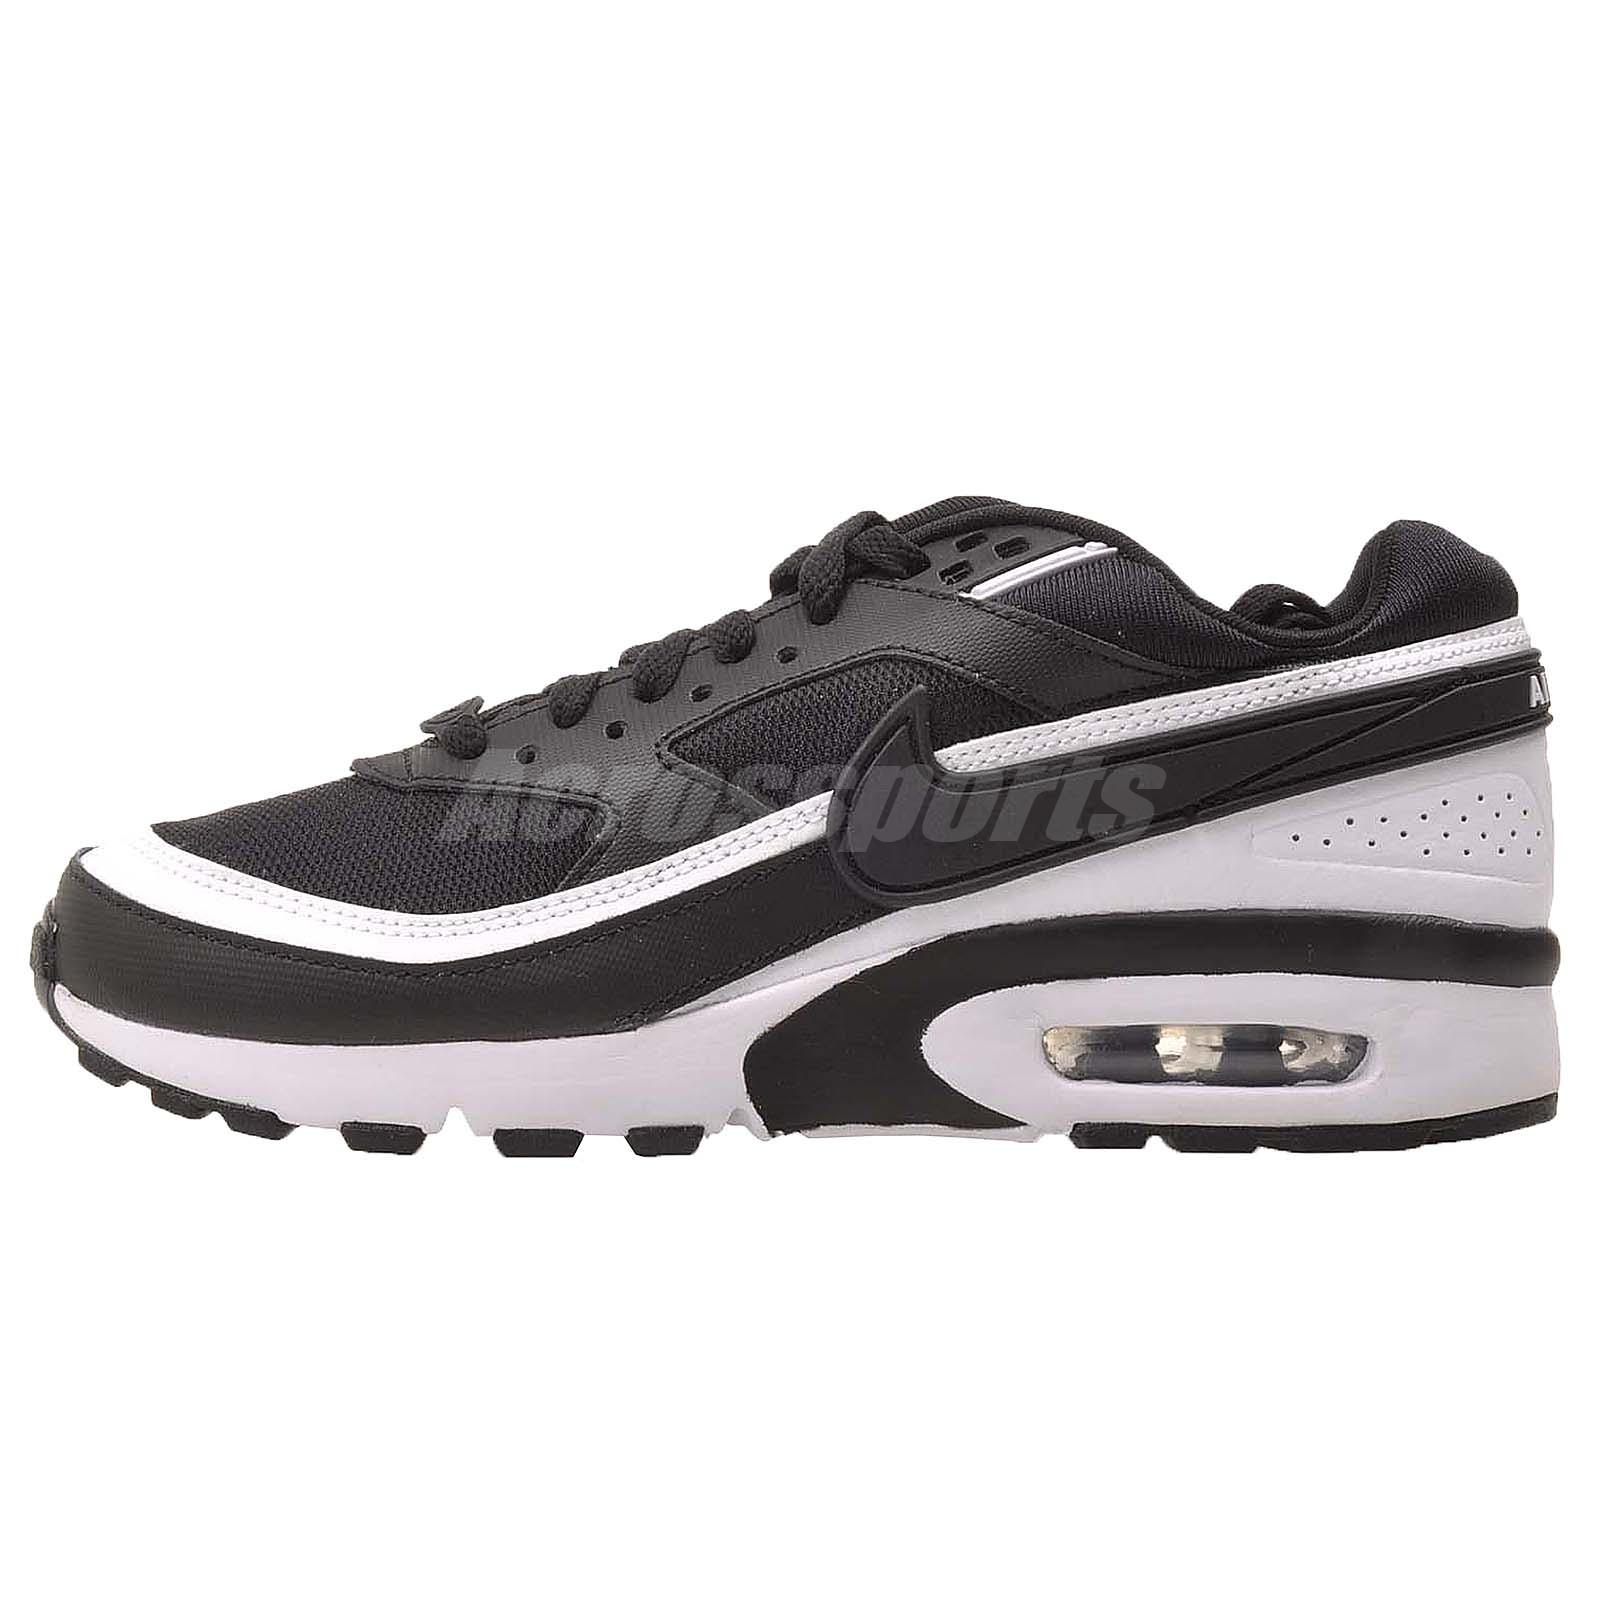 bce389cf46 nike air max youth boys online > OFF79% Discounts